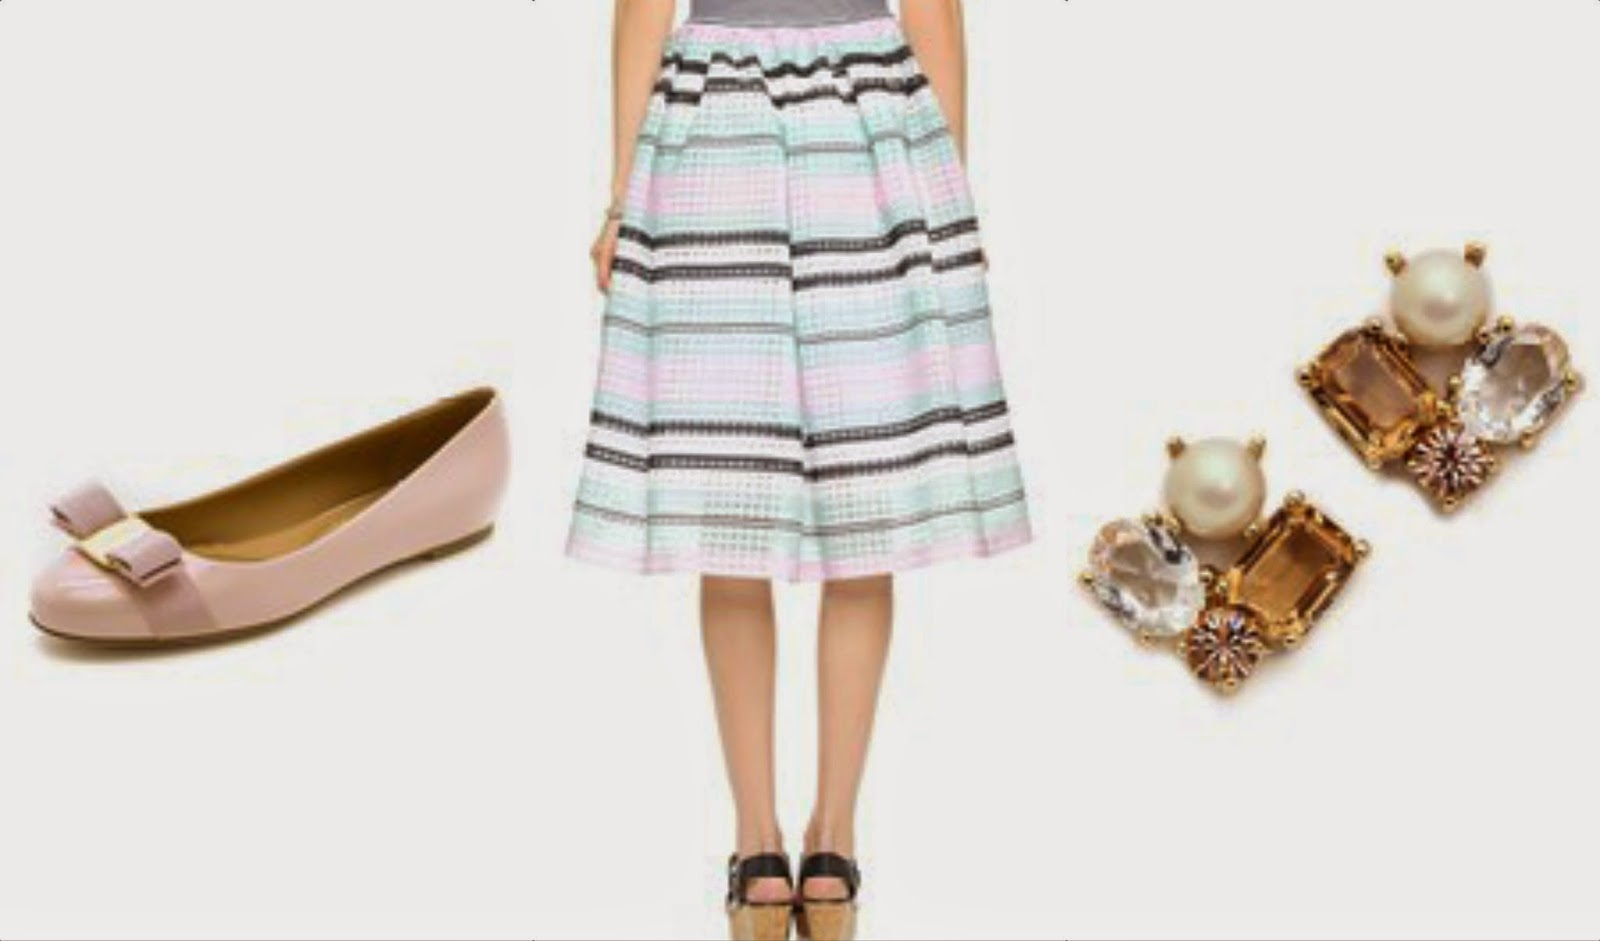 ferragamo shoes spring skirt kate spade earrings